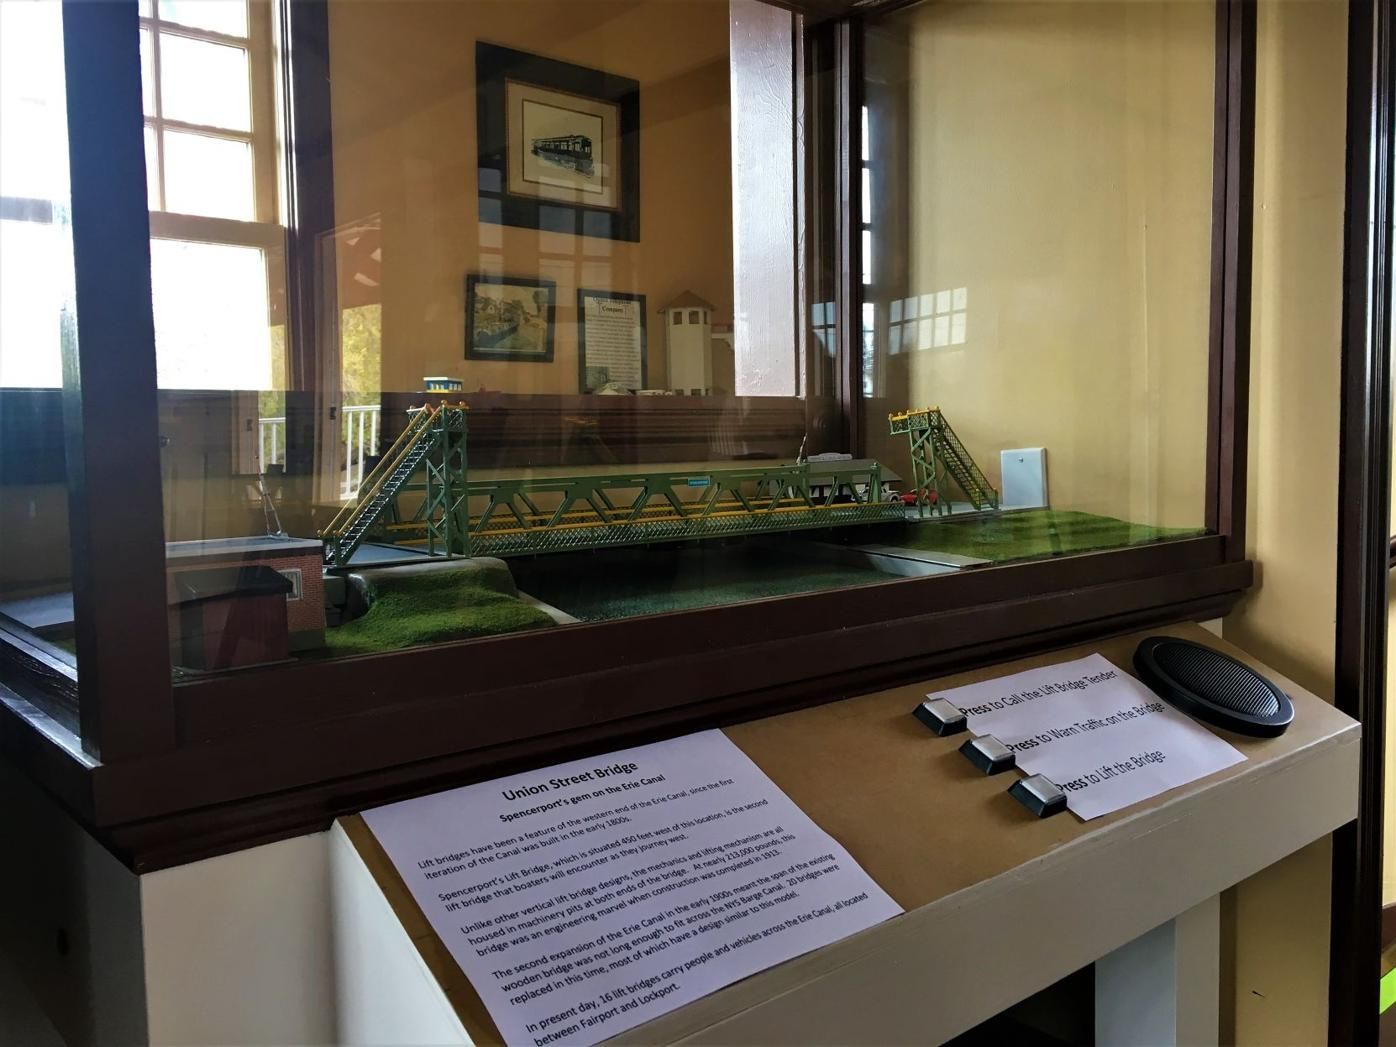 New Lift Bridge Display